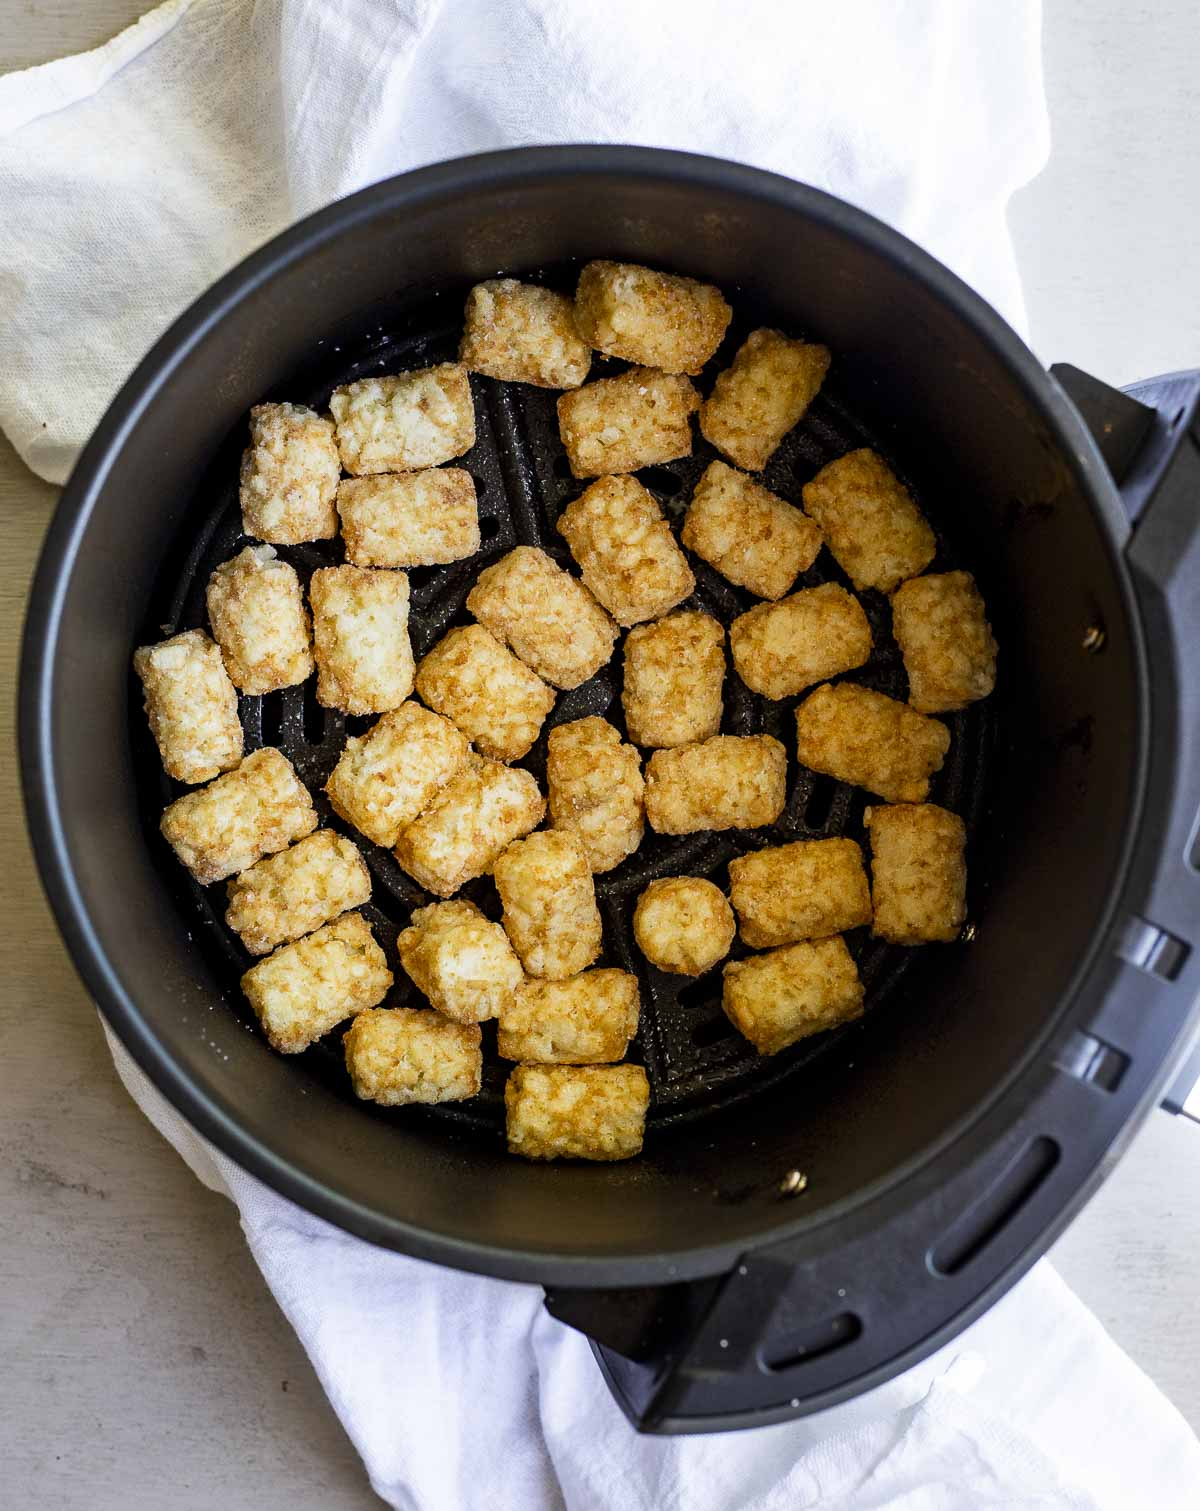 Tater tots in the air fryer before frying.